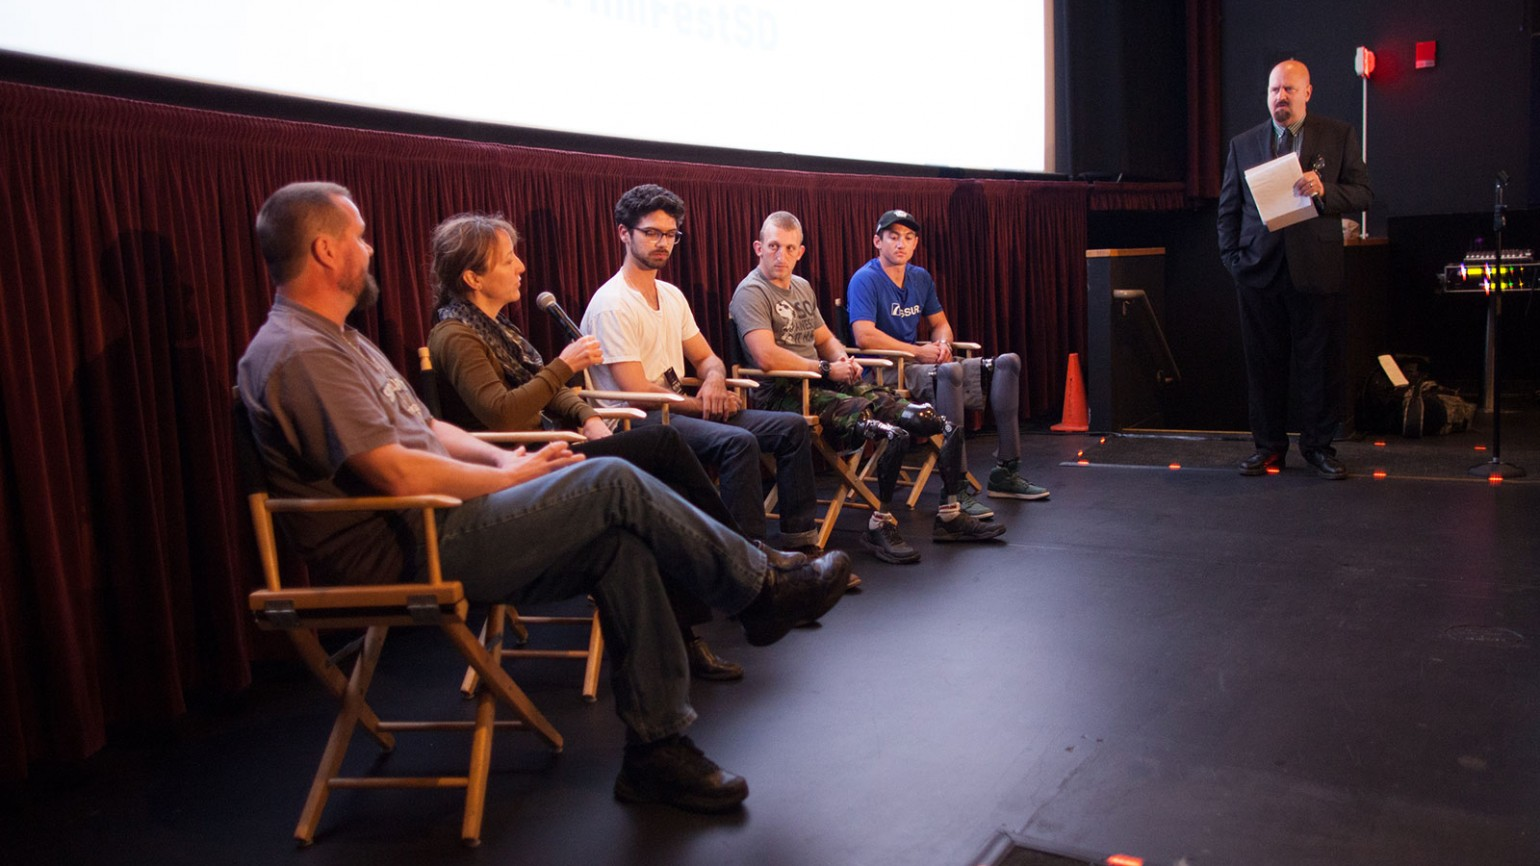 """Panel discussion following """"Triumphs and Tragedies"""" film block on Saturday, October 17, 2015"""